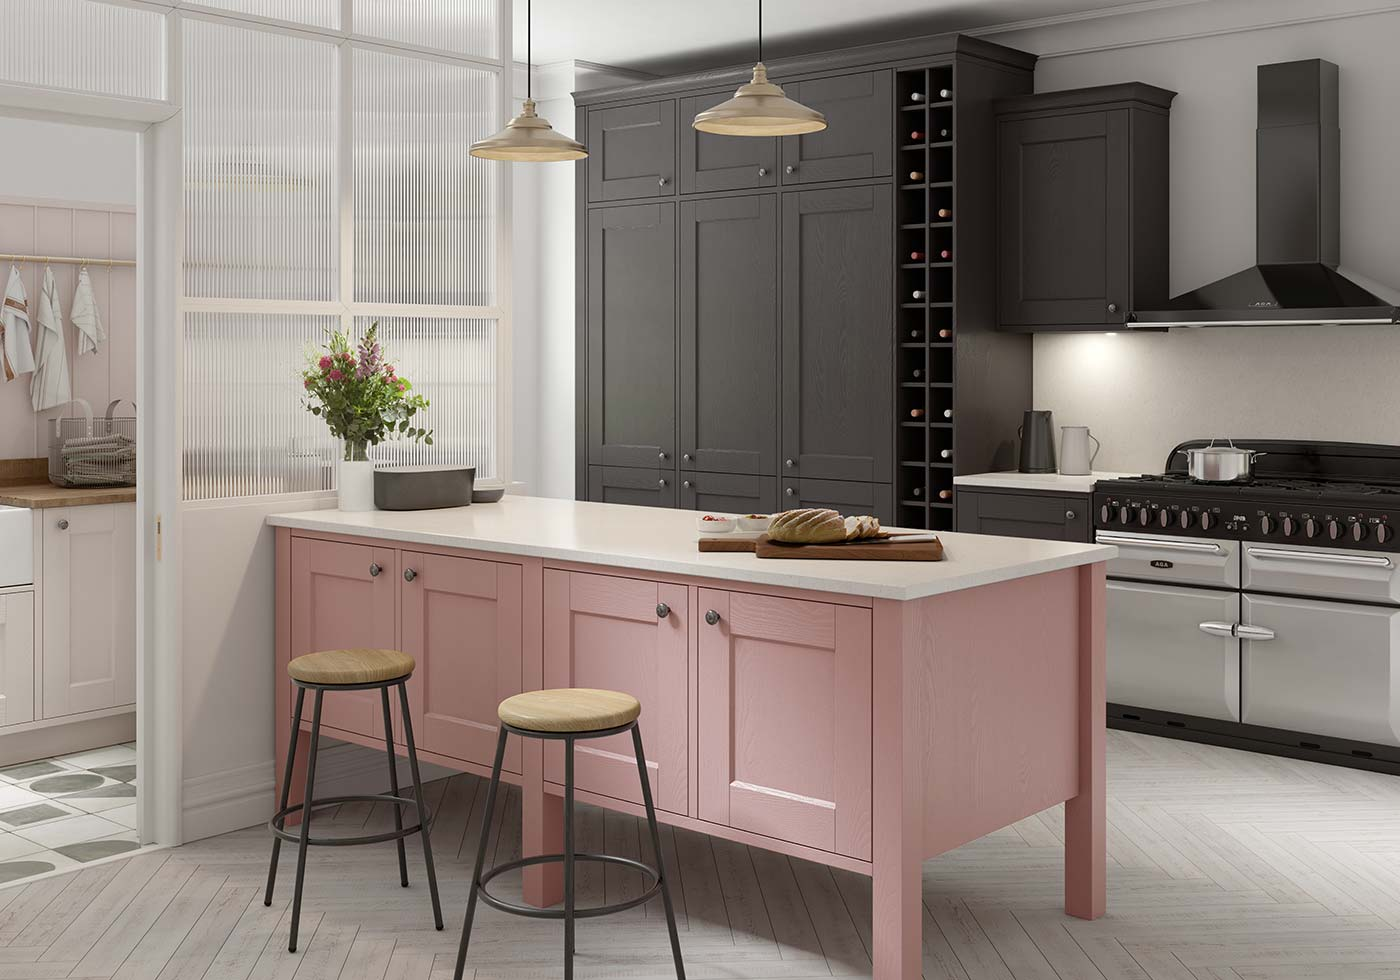 Classic pink kitchen